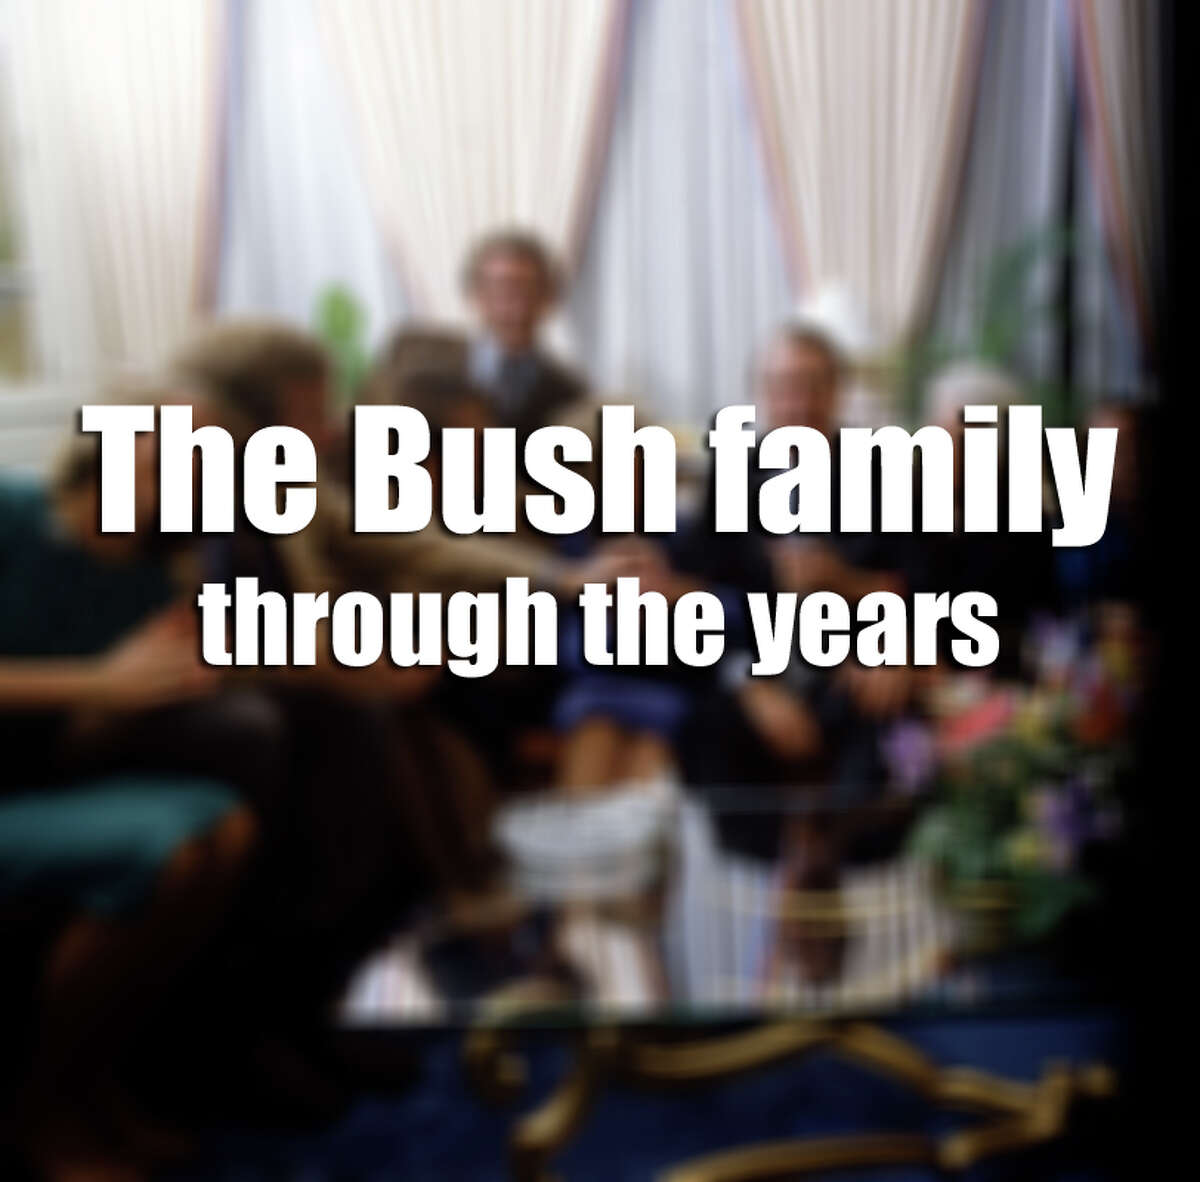 The Bush Family through the years See the evolution of an American political dynasty with these intimate early family-centric photos of the Bush clan.